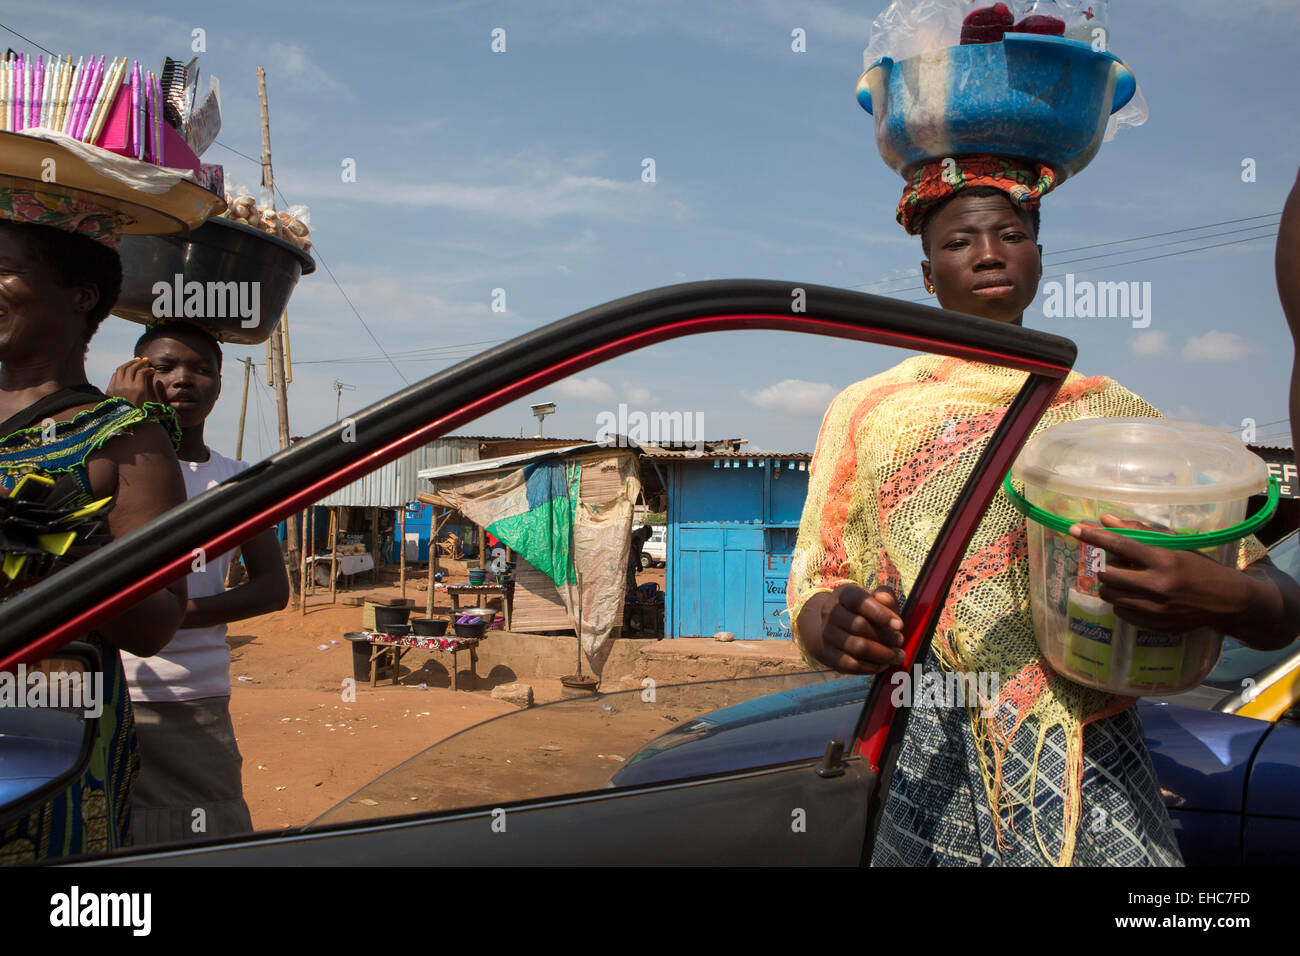 LOME, TOGO, 9th December 2012; Street sellers with food and goods - Stock Image